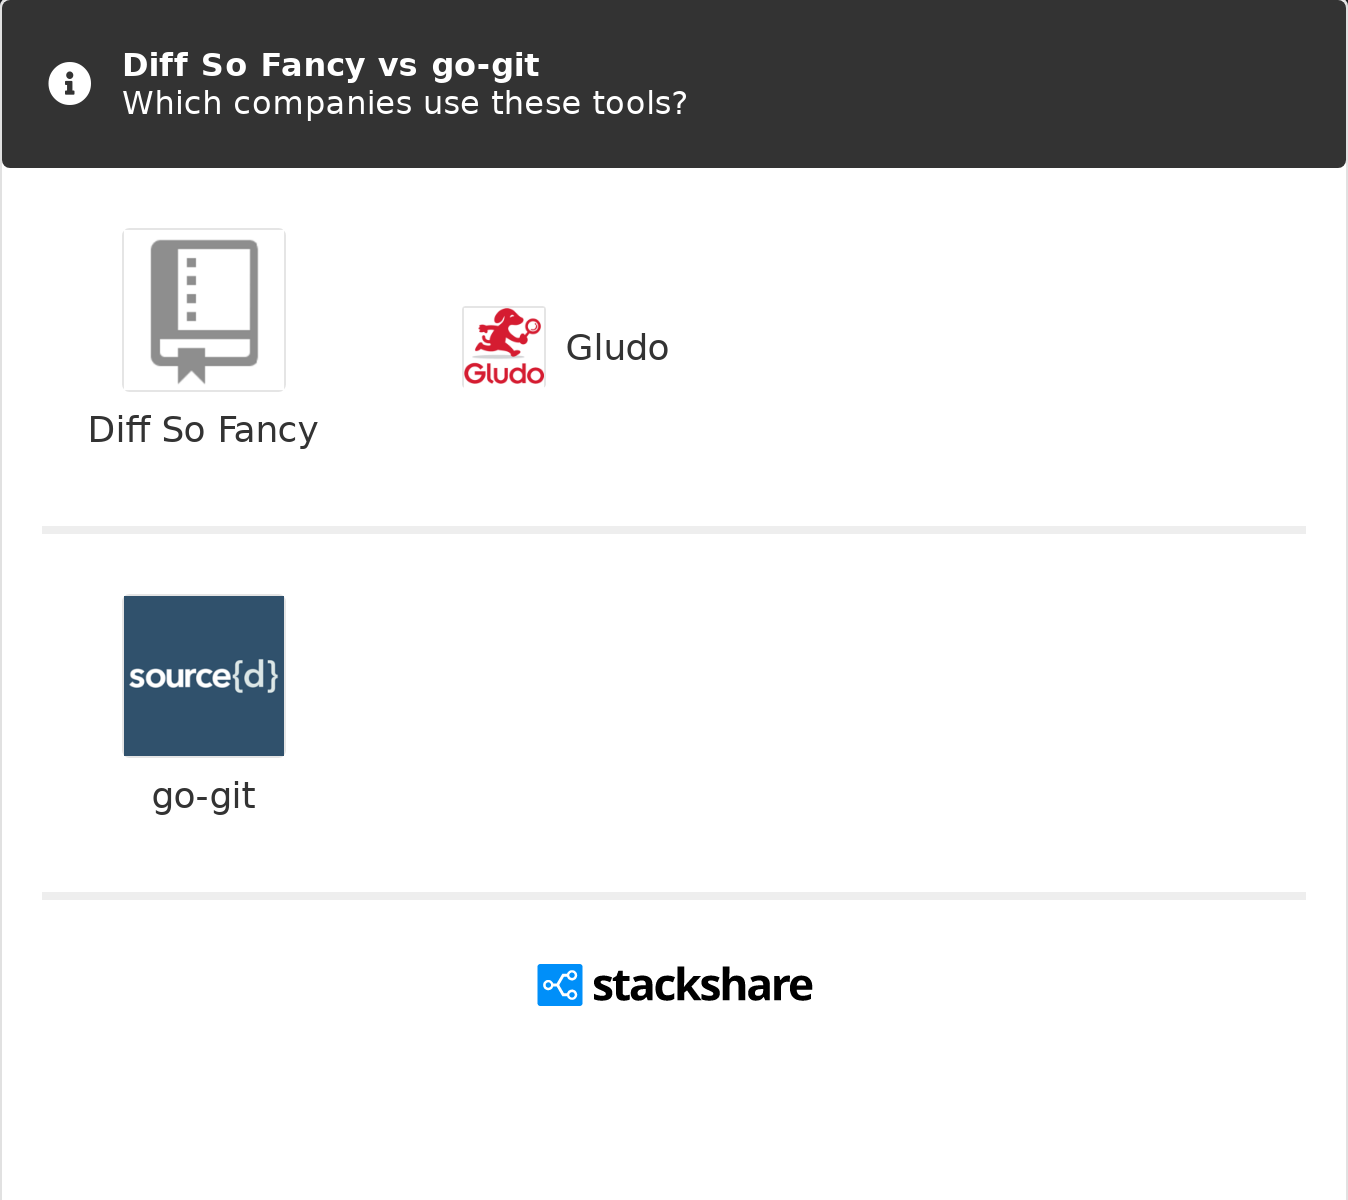 Diff So Fancy vs go-git | What are the differences?